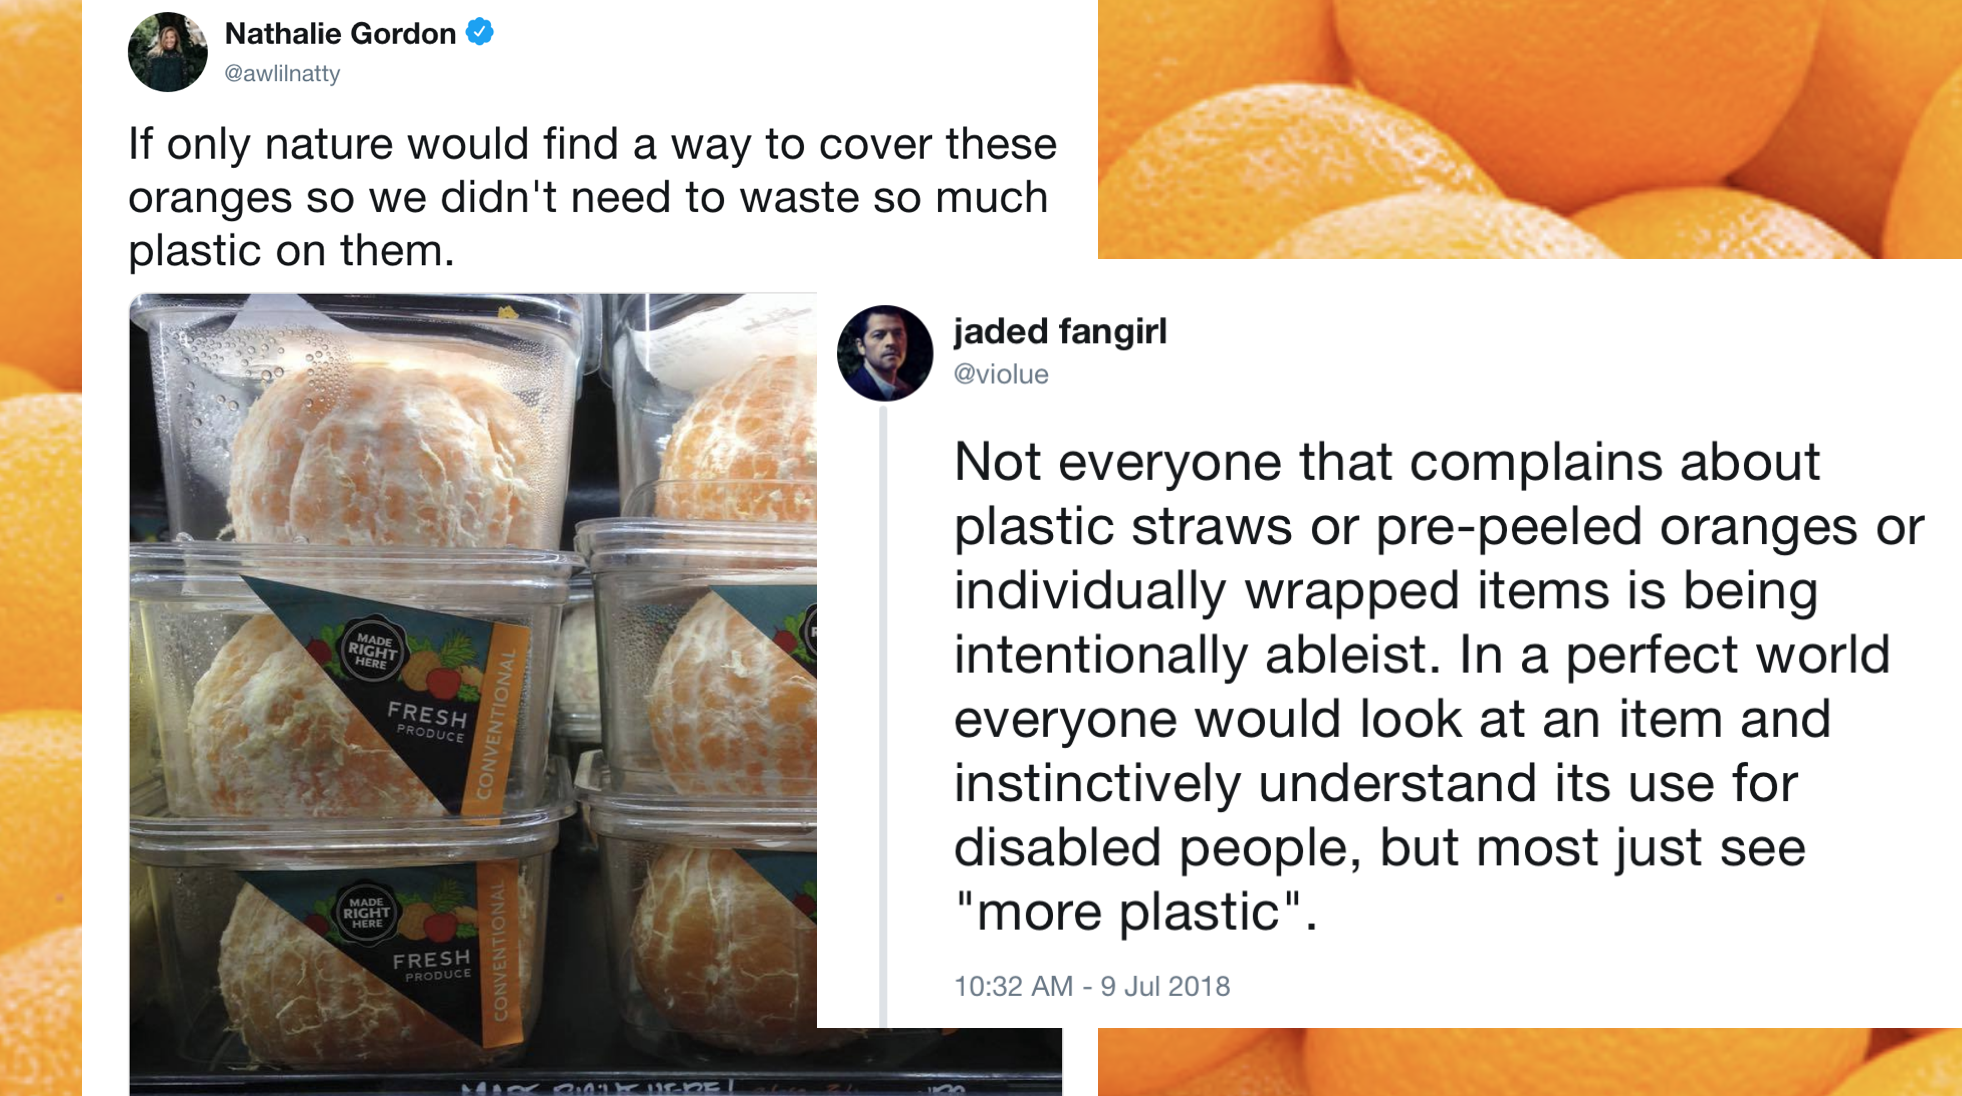 "juxtaposed tweets: ""if only nature would find a way to cover these oranges so we didn't need to waste so much plastic on them"" vs ""not everyone that complains about plastic straws or pre-peeled oranges or individually wrapped items is being intentionally ableist. In a perfect world everyone would look at an item an instinctively understand its use for disabled people, but most just see ""more plastic"""""